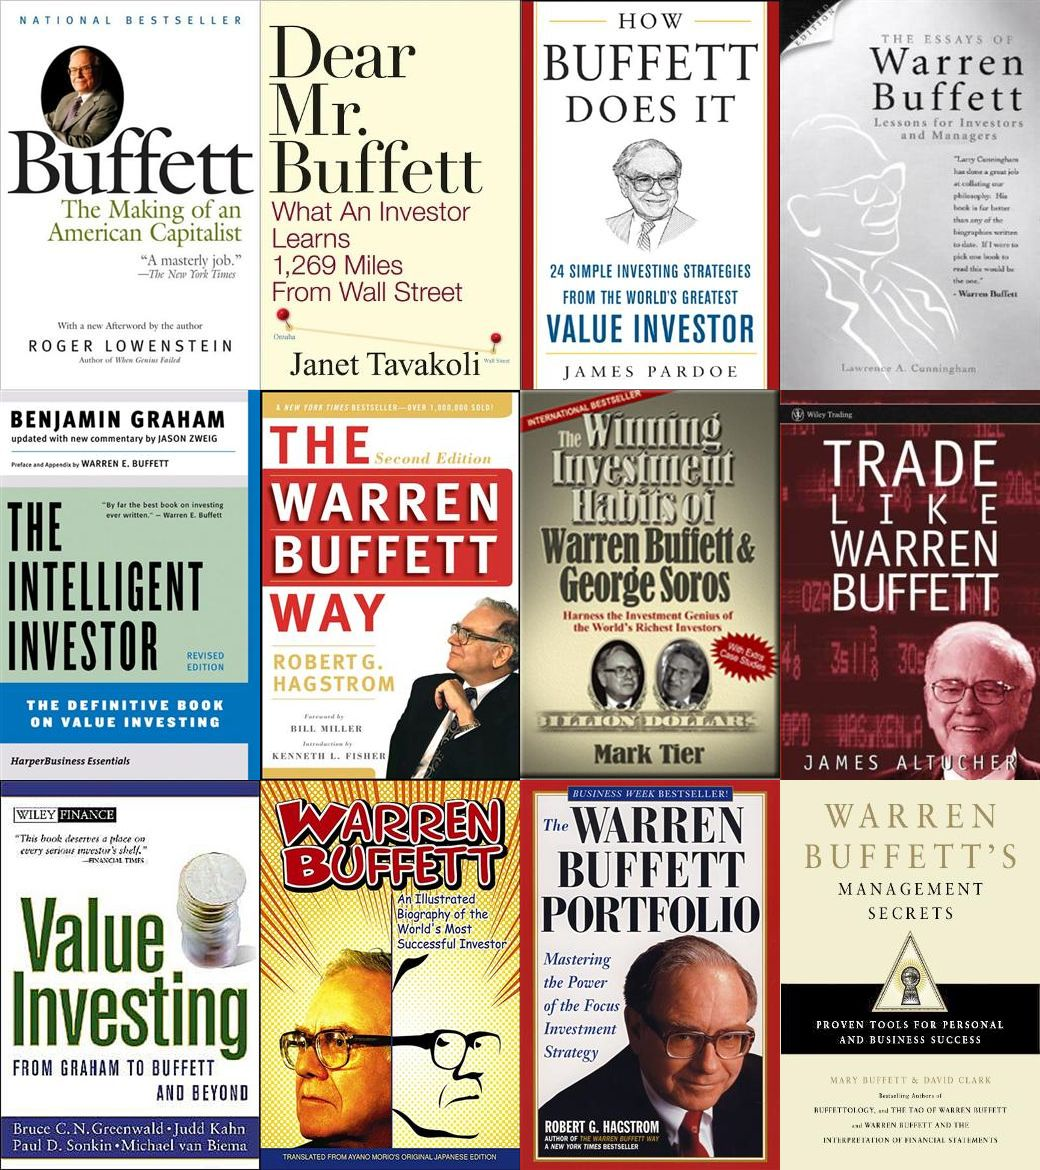 Warren Buffett books | Business | Pinterest | Warren buffett, Books and  Reading lists - Warren Buffett Books Business Pinterest Warren Buffett